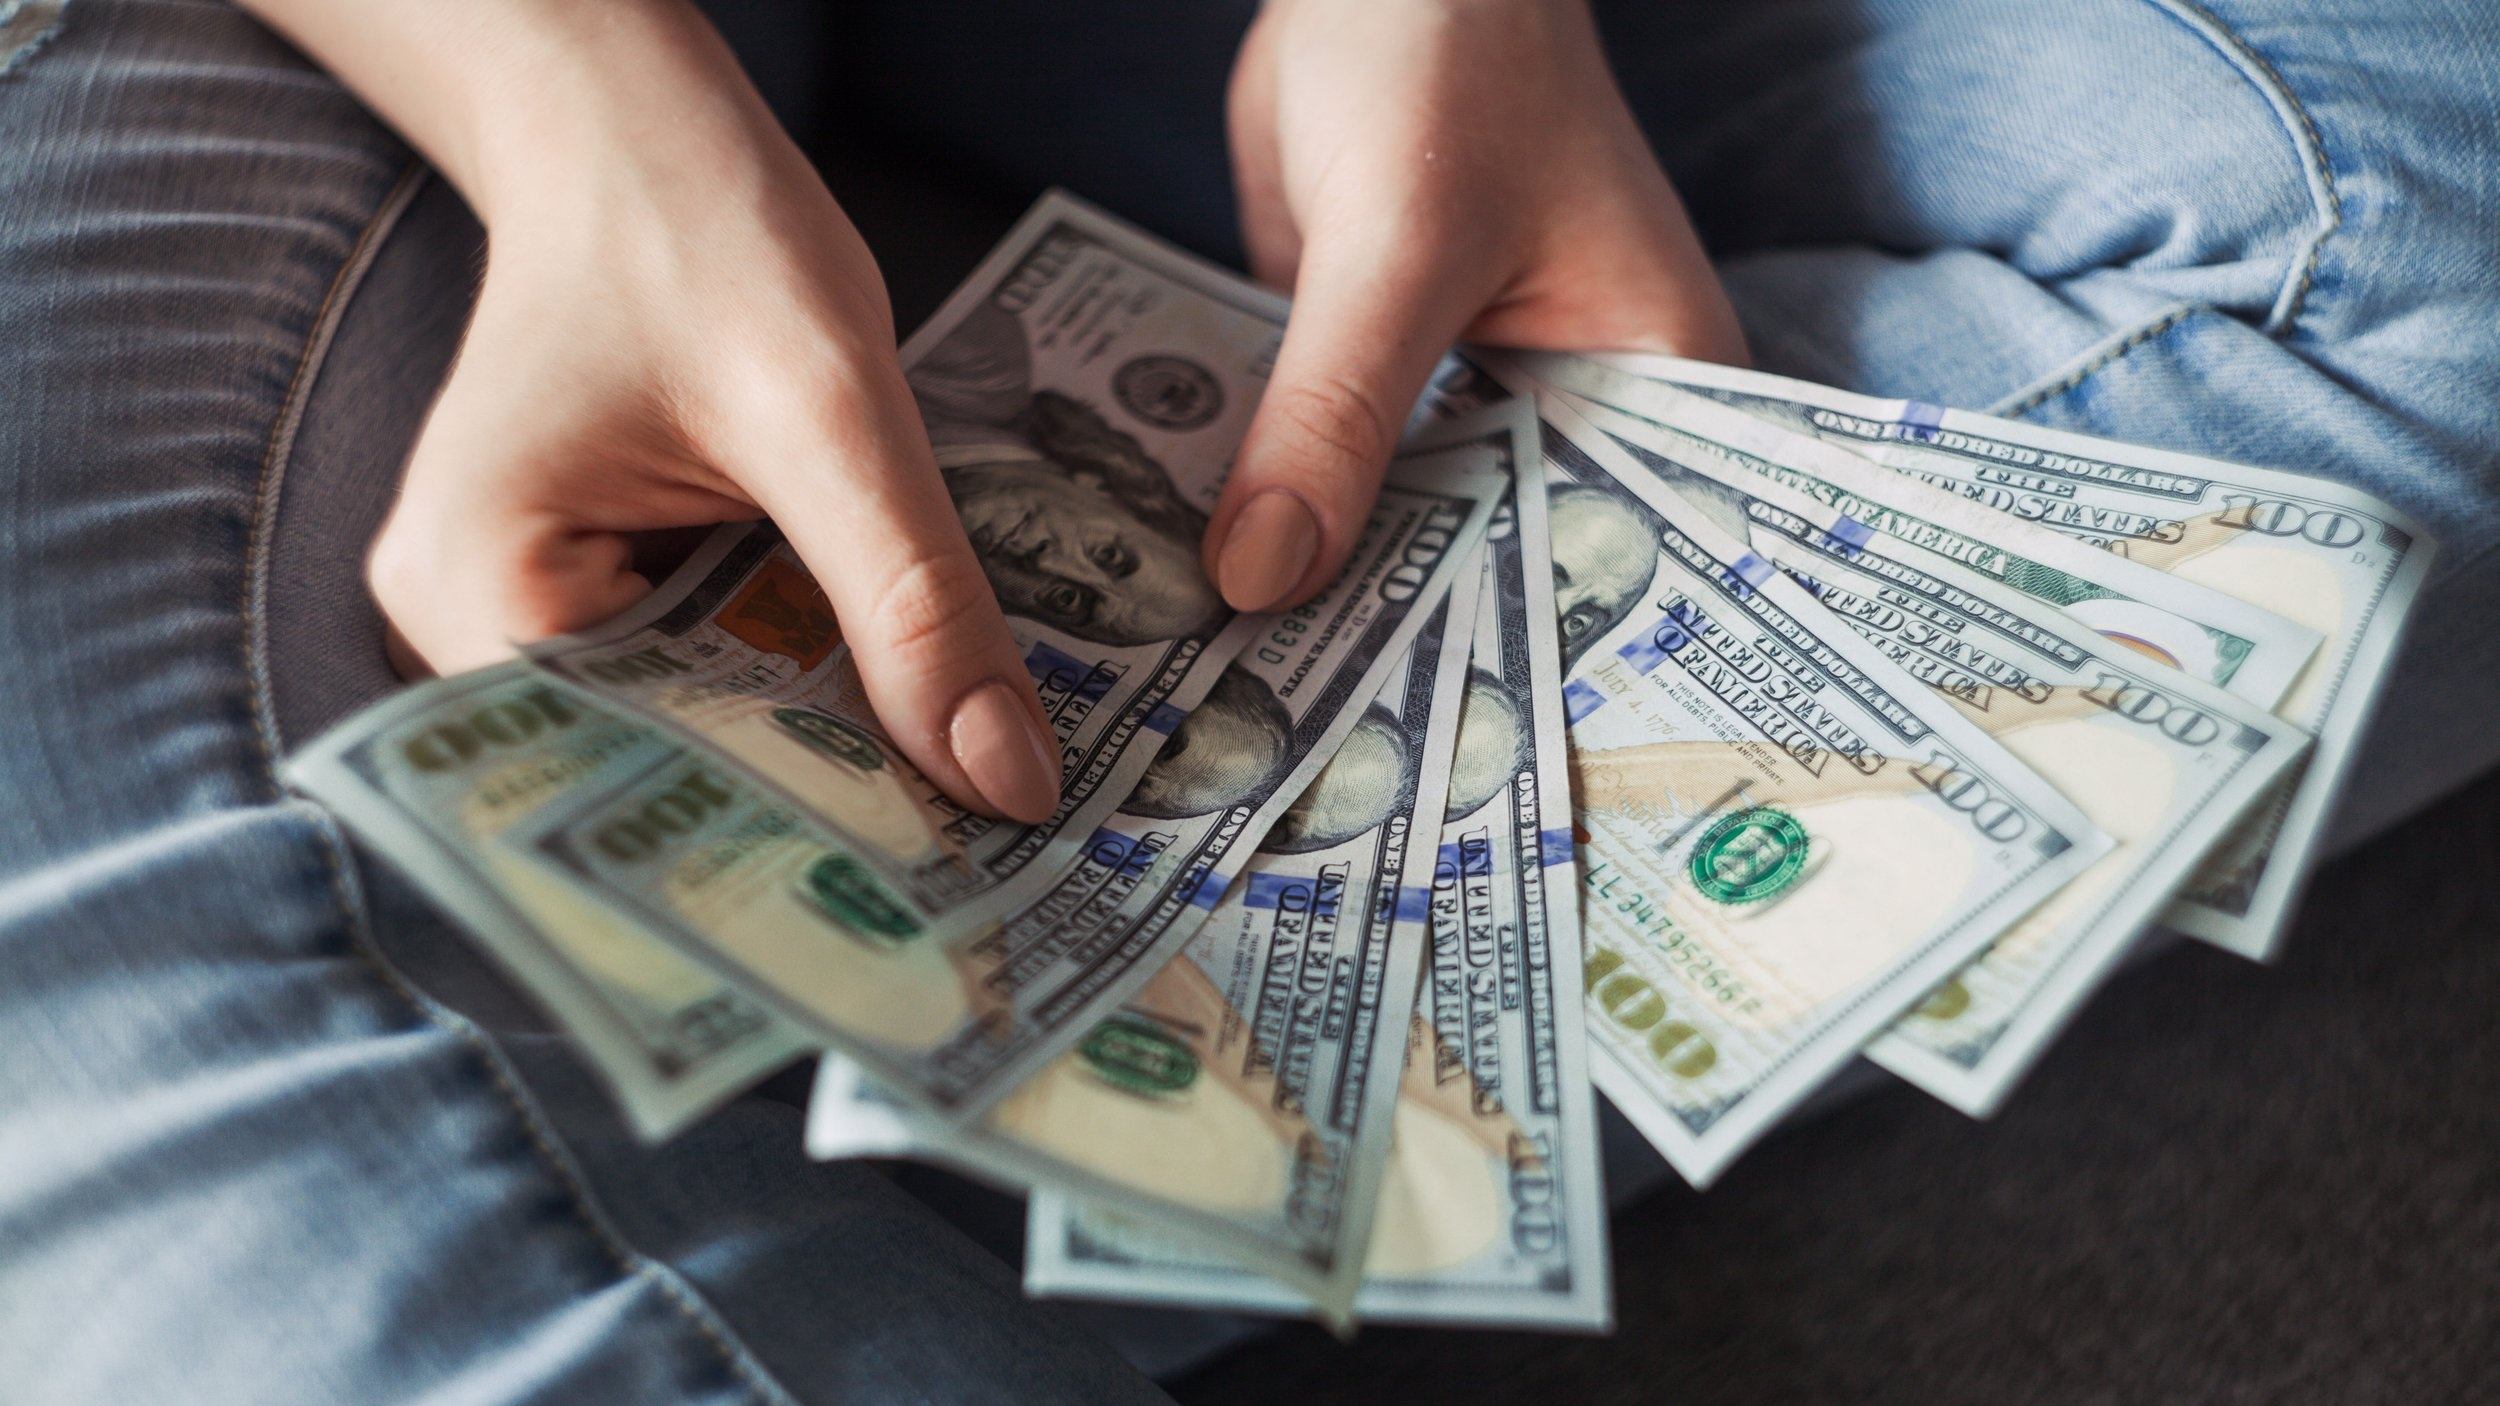 It's Expensive - Custom software can cost tens, or even hundreds, of thousands of dollars. You need to make sure you're building the right thing before spending your money.